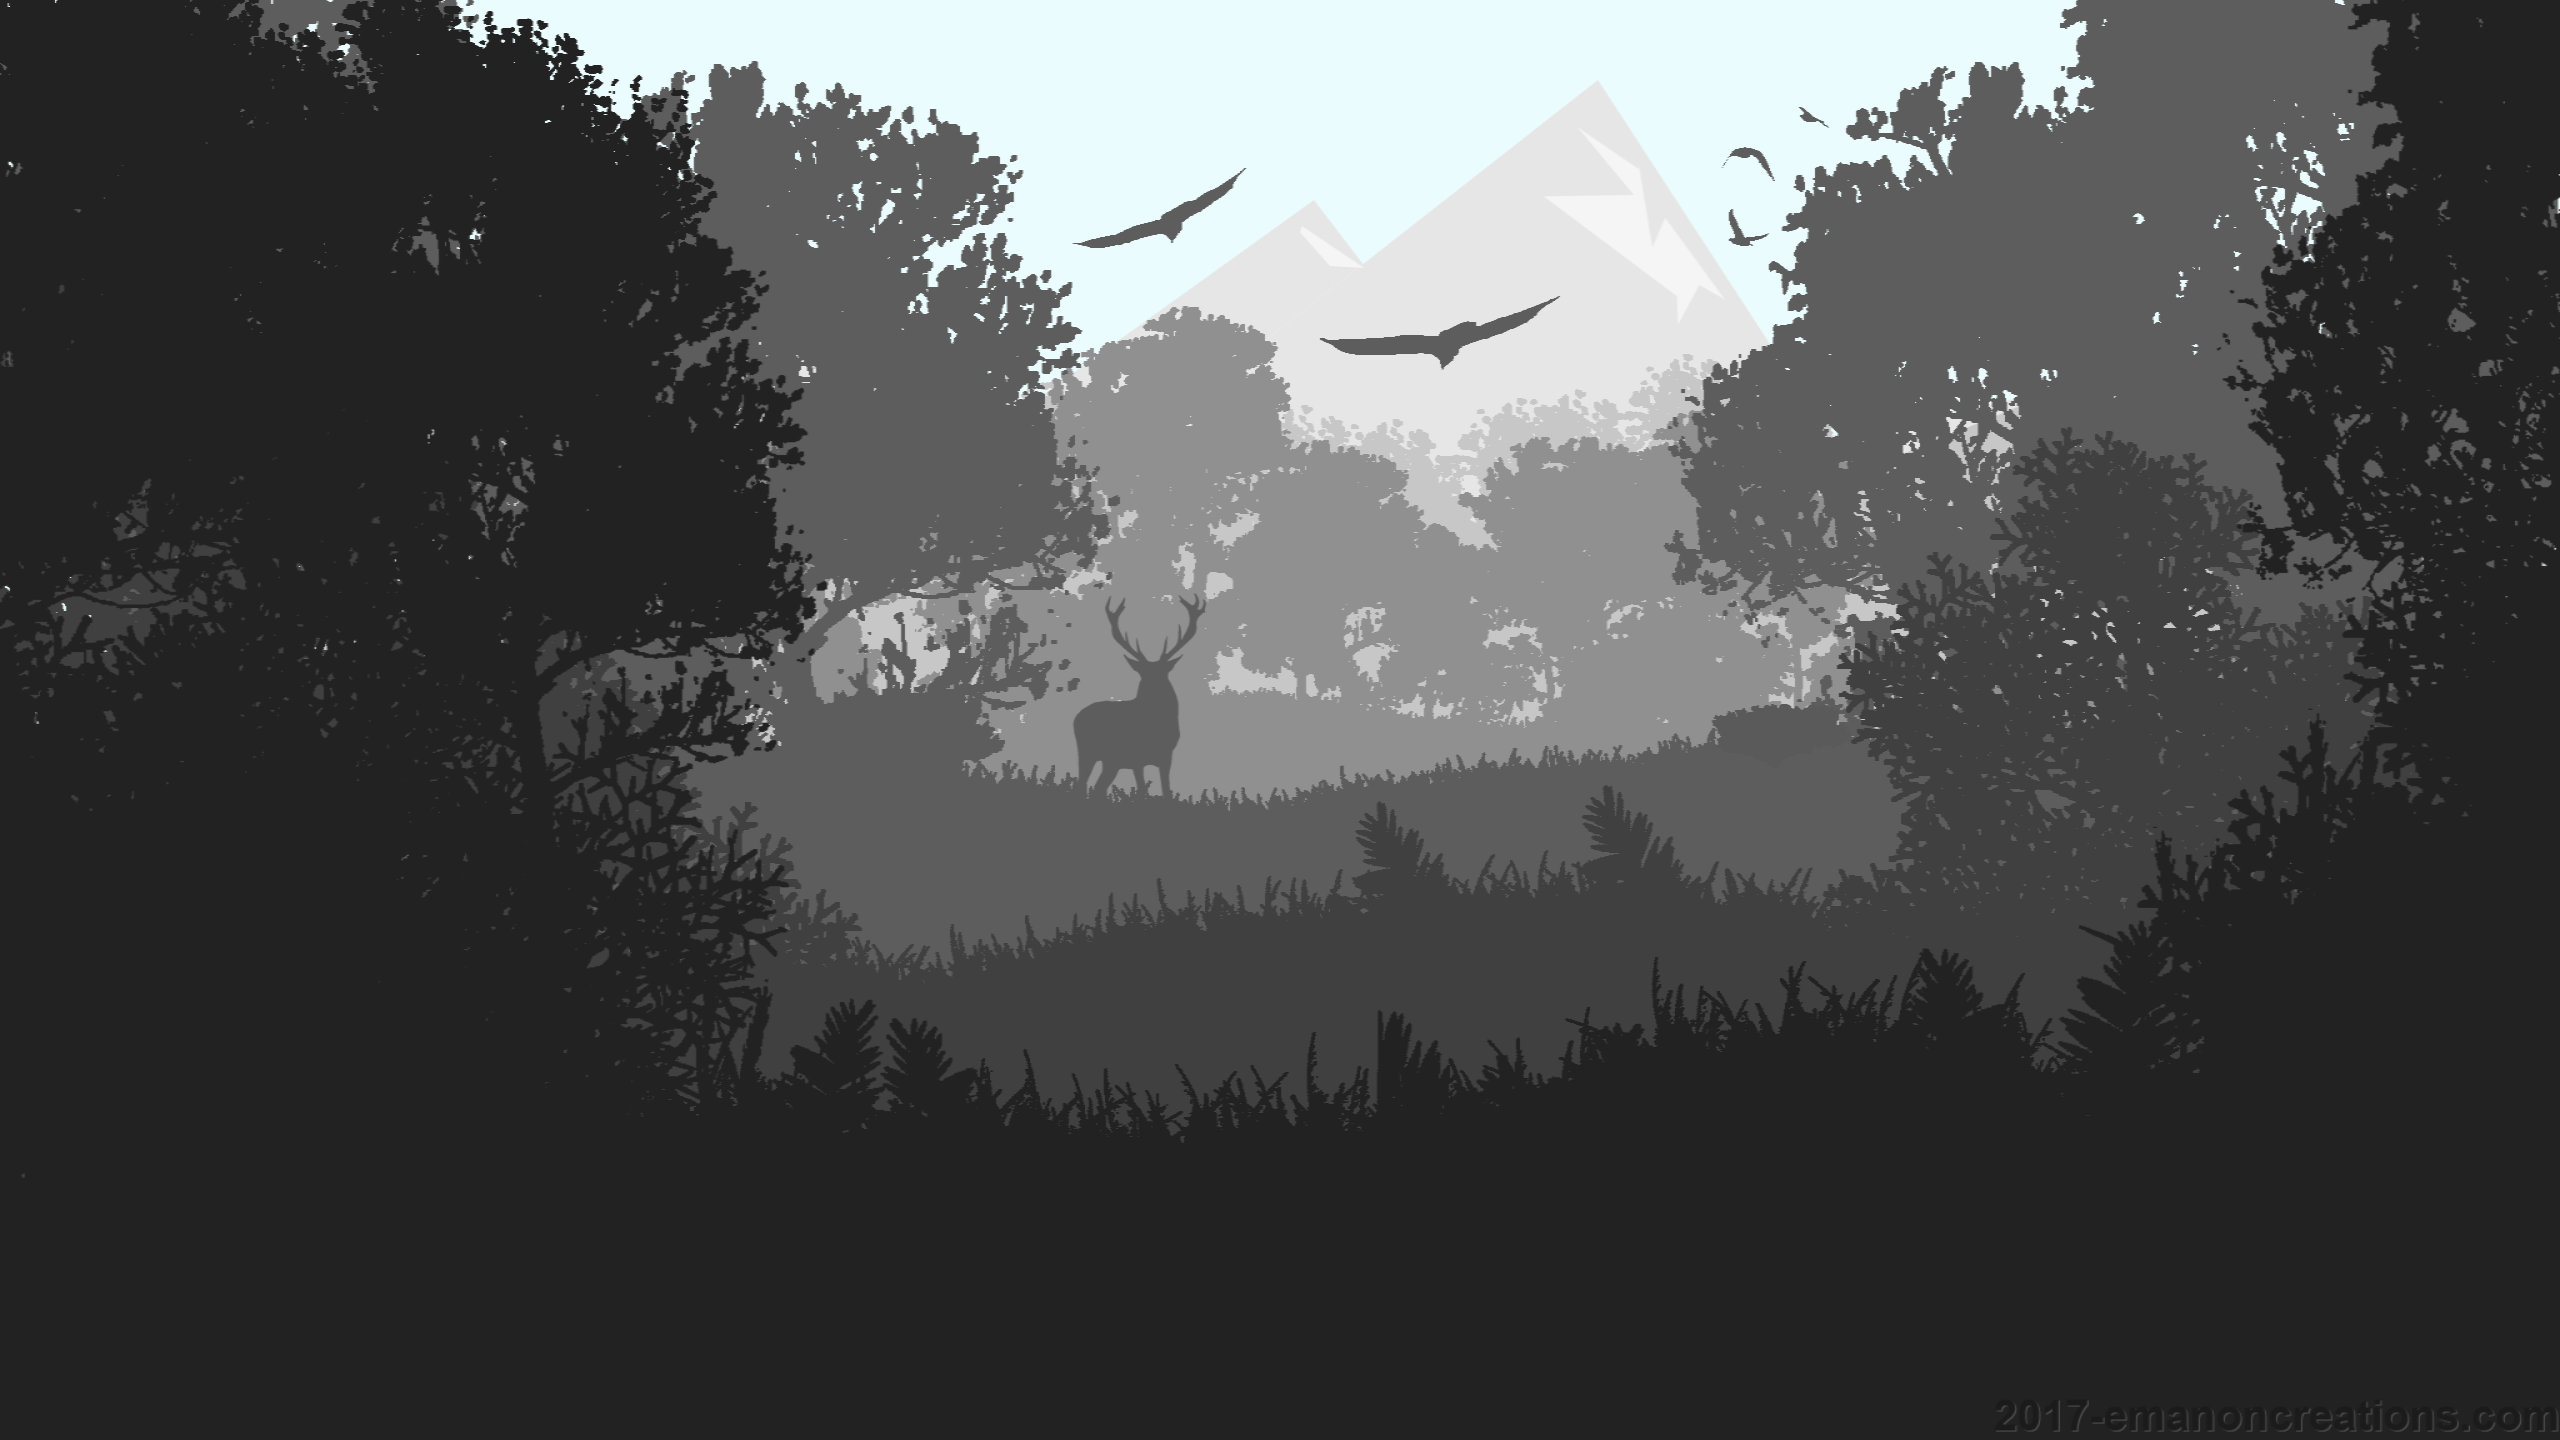 2560x1440 Minimalist Forest Wp 01 2560x1440 - Wallpaper - EmanonCreations